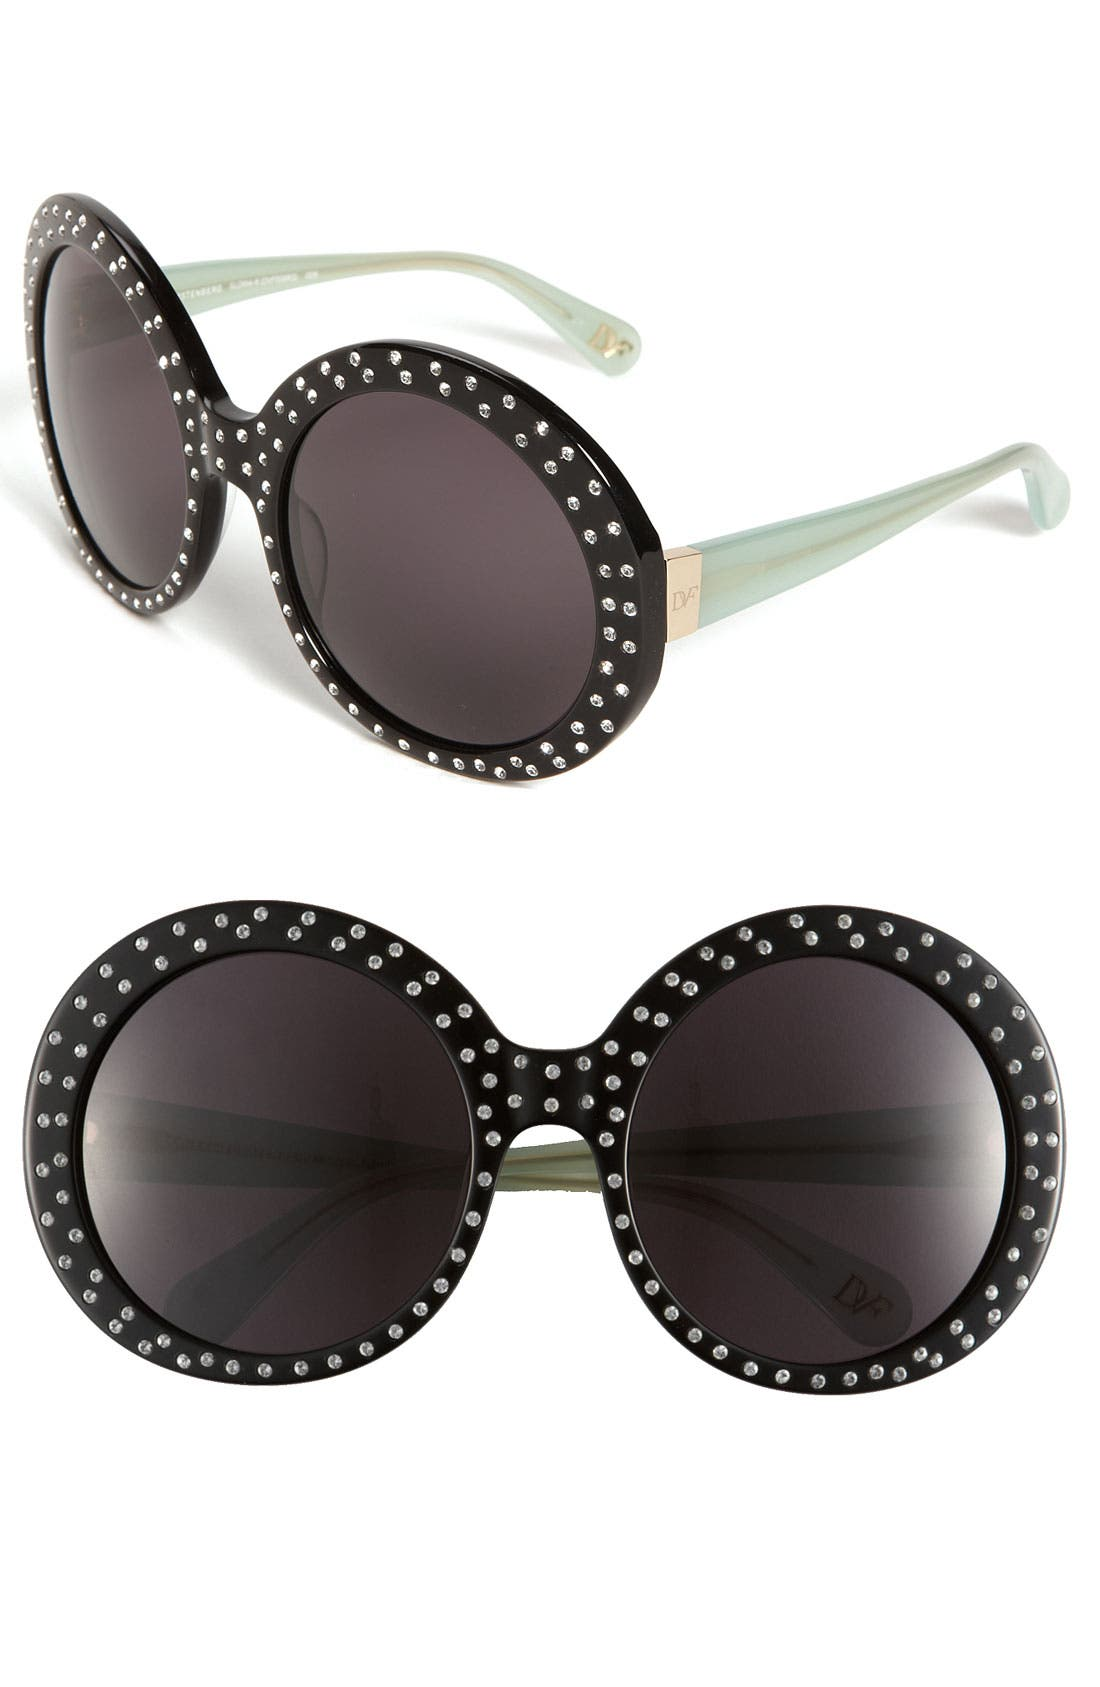 Alternate Image 1 Selected - Diane von Furstenberg 'Gloria - Oversized' Round Sunglasses